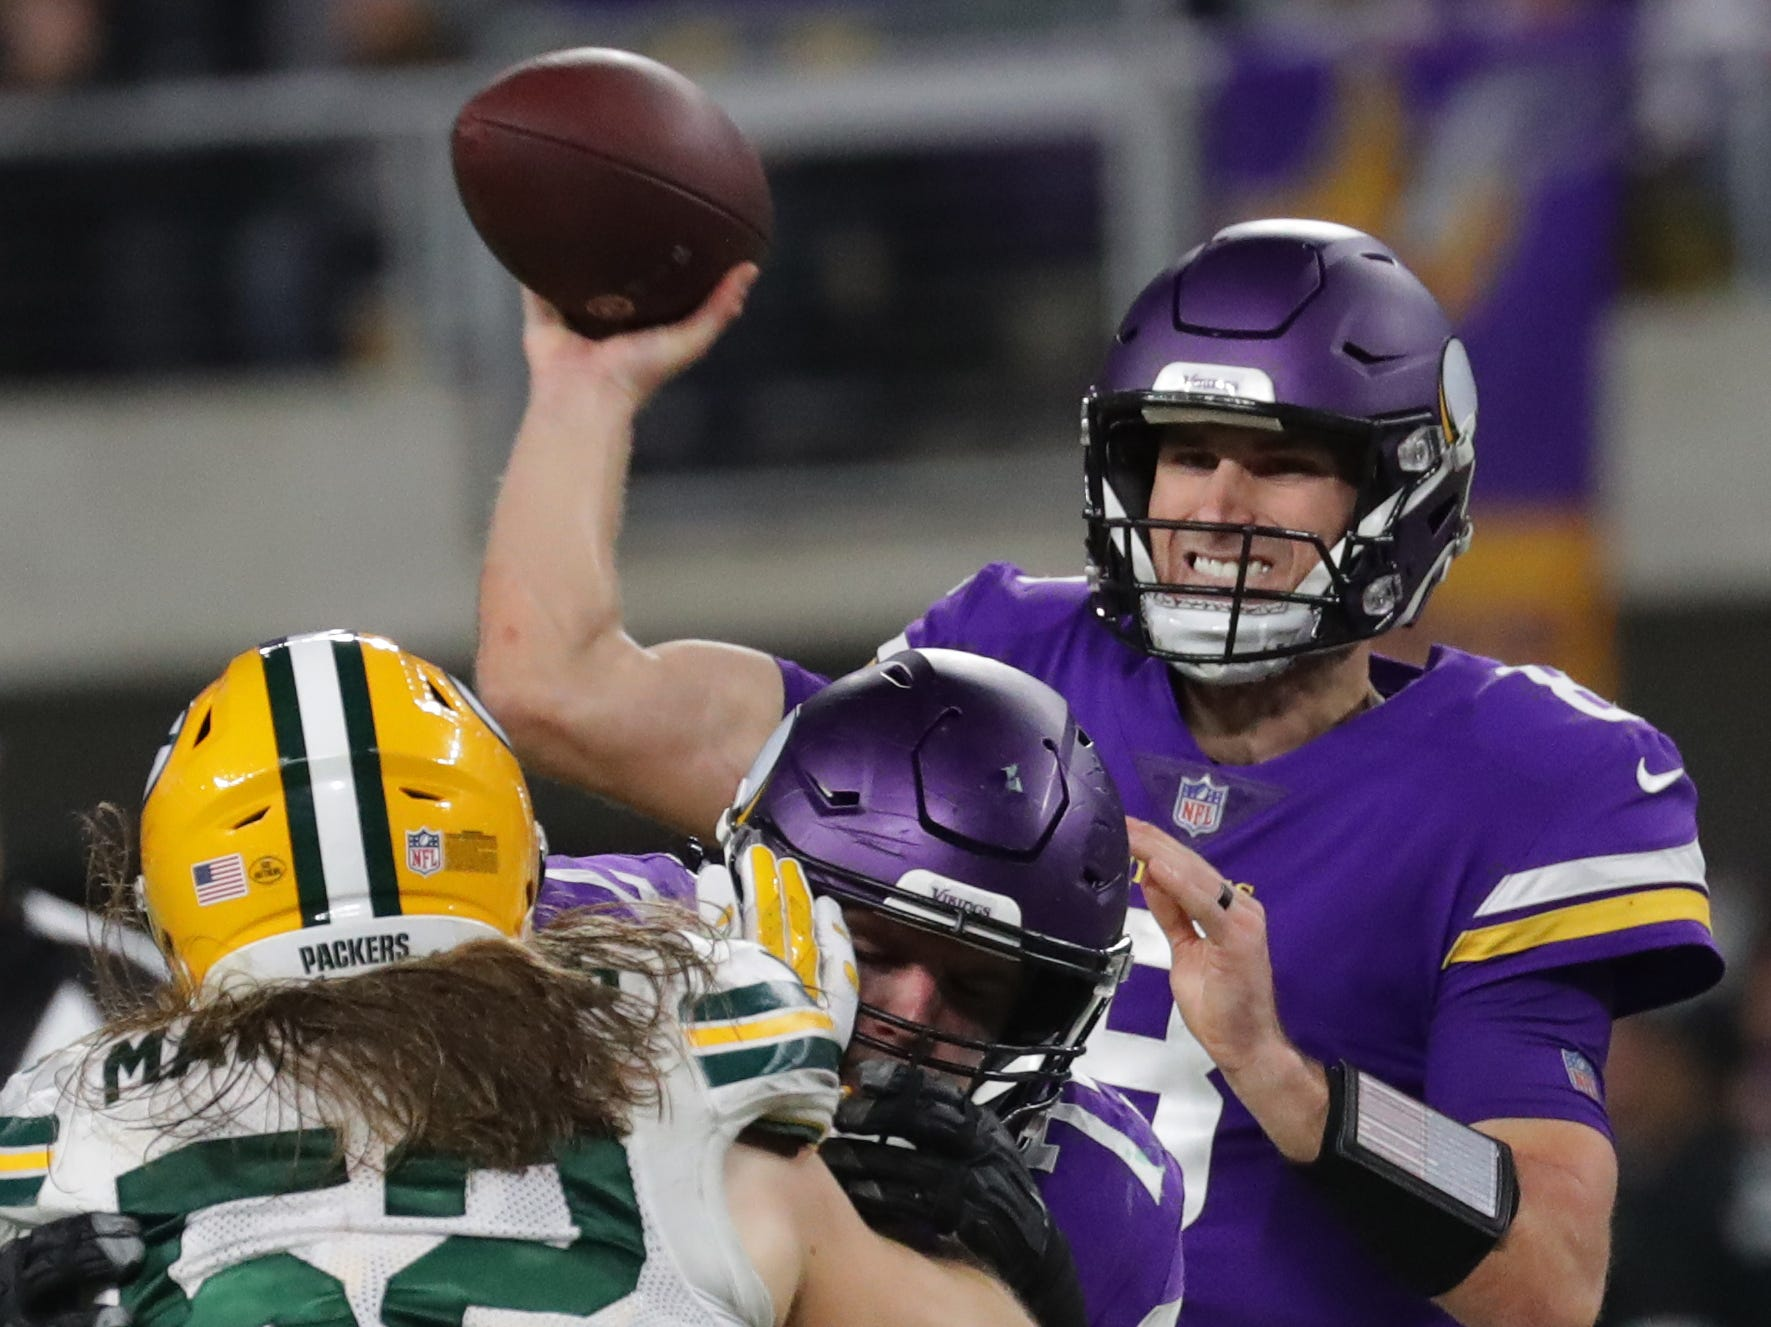 Minnesota Vikings quarterback Kirk Cousins (8) throws pass over Green Bay Packers outside linebacker Clay Matthews (52) during the third quarter of their game Sunday, November 25, 2018 at U.S. Bank Stadium in Minneapolis, Minn. The Minnesota Vikings beat the Green Bay Packers 24-17.